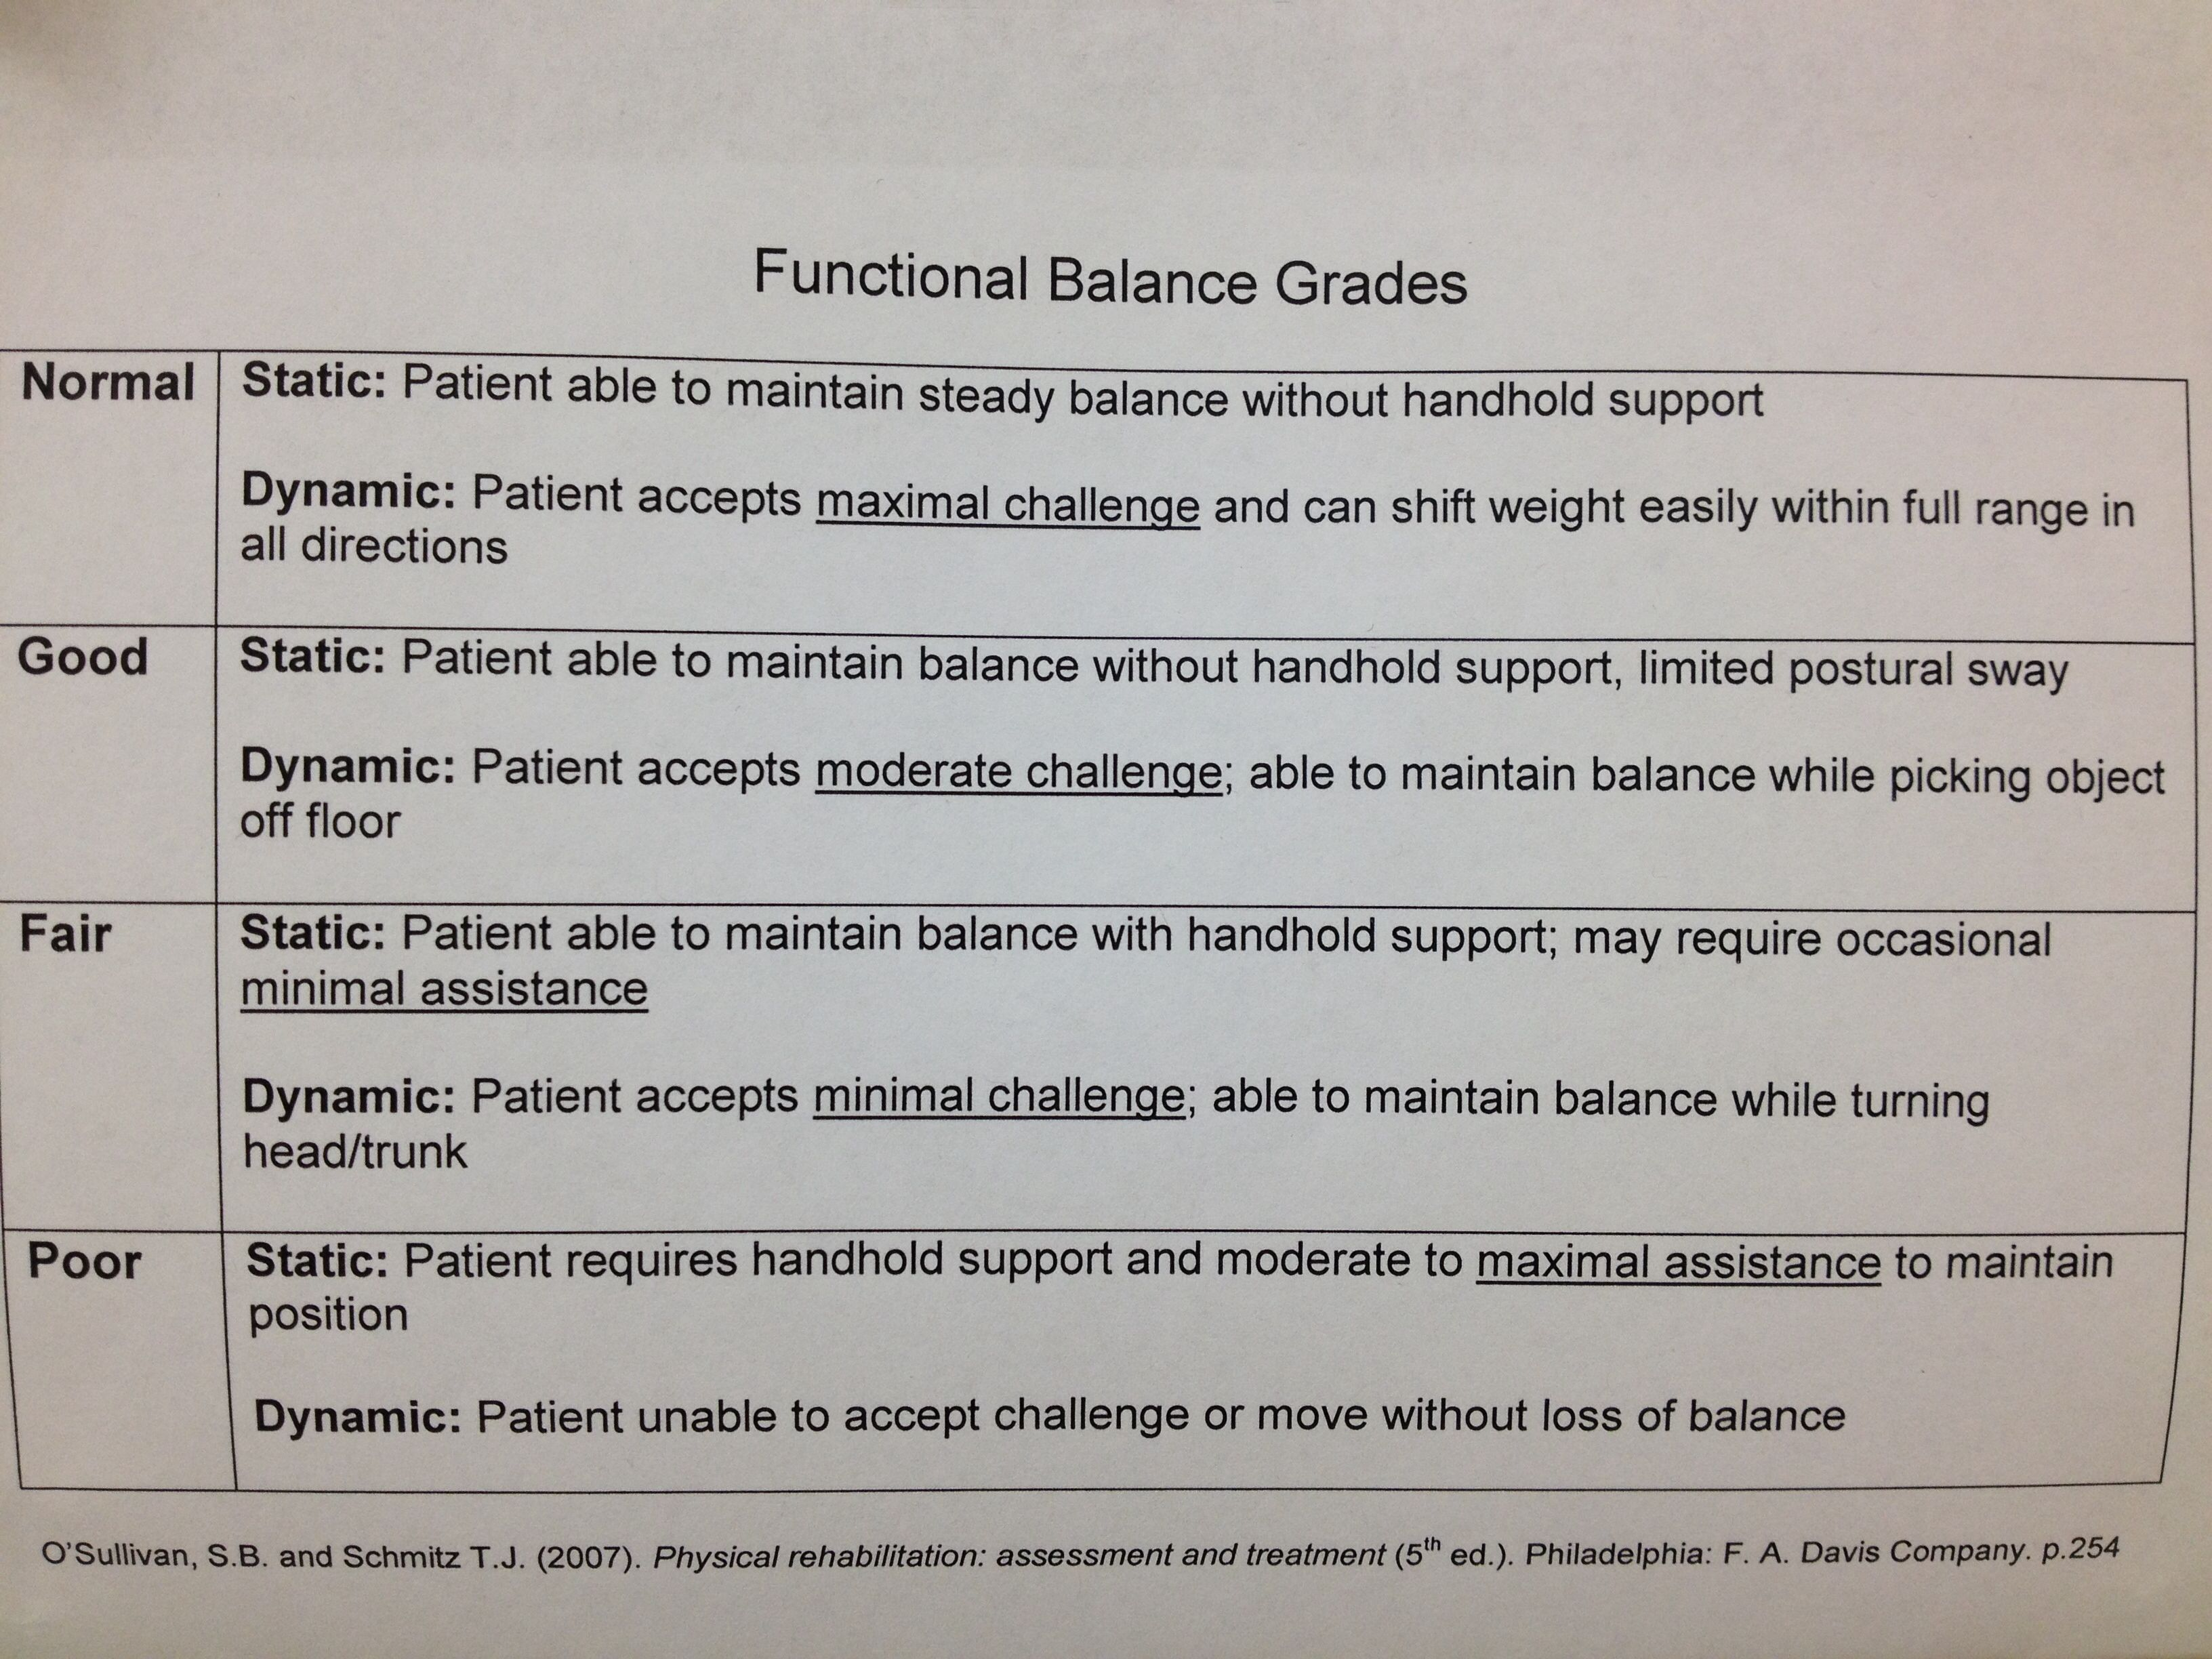 Functional Balance Grades With Images